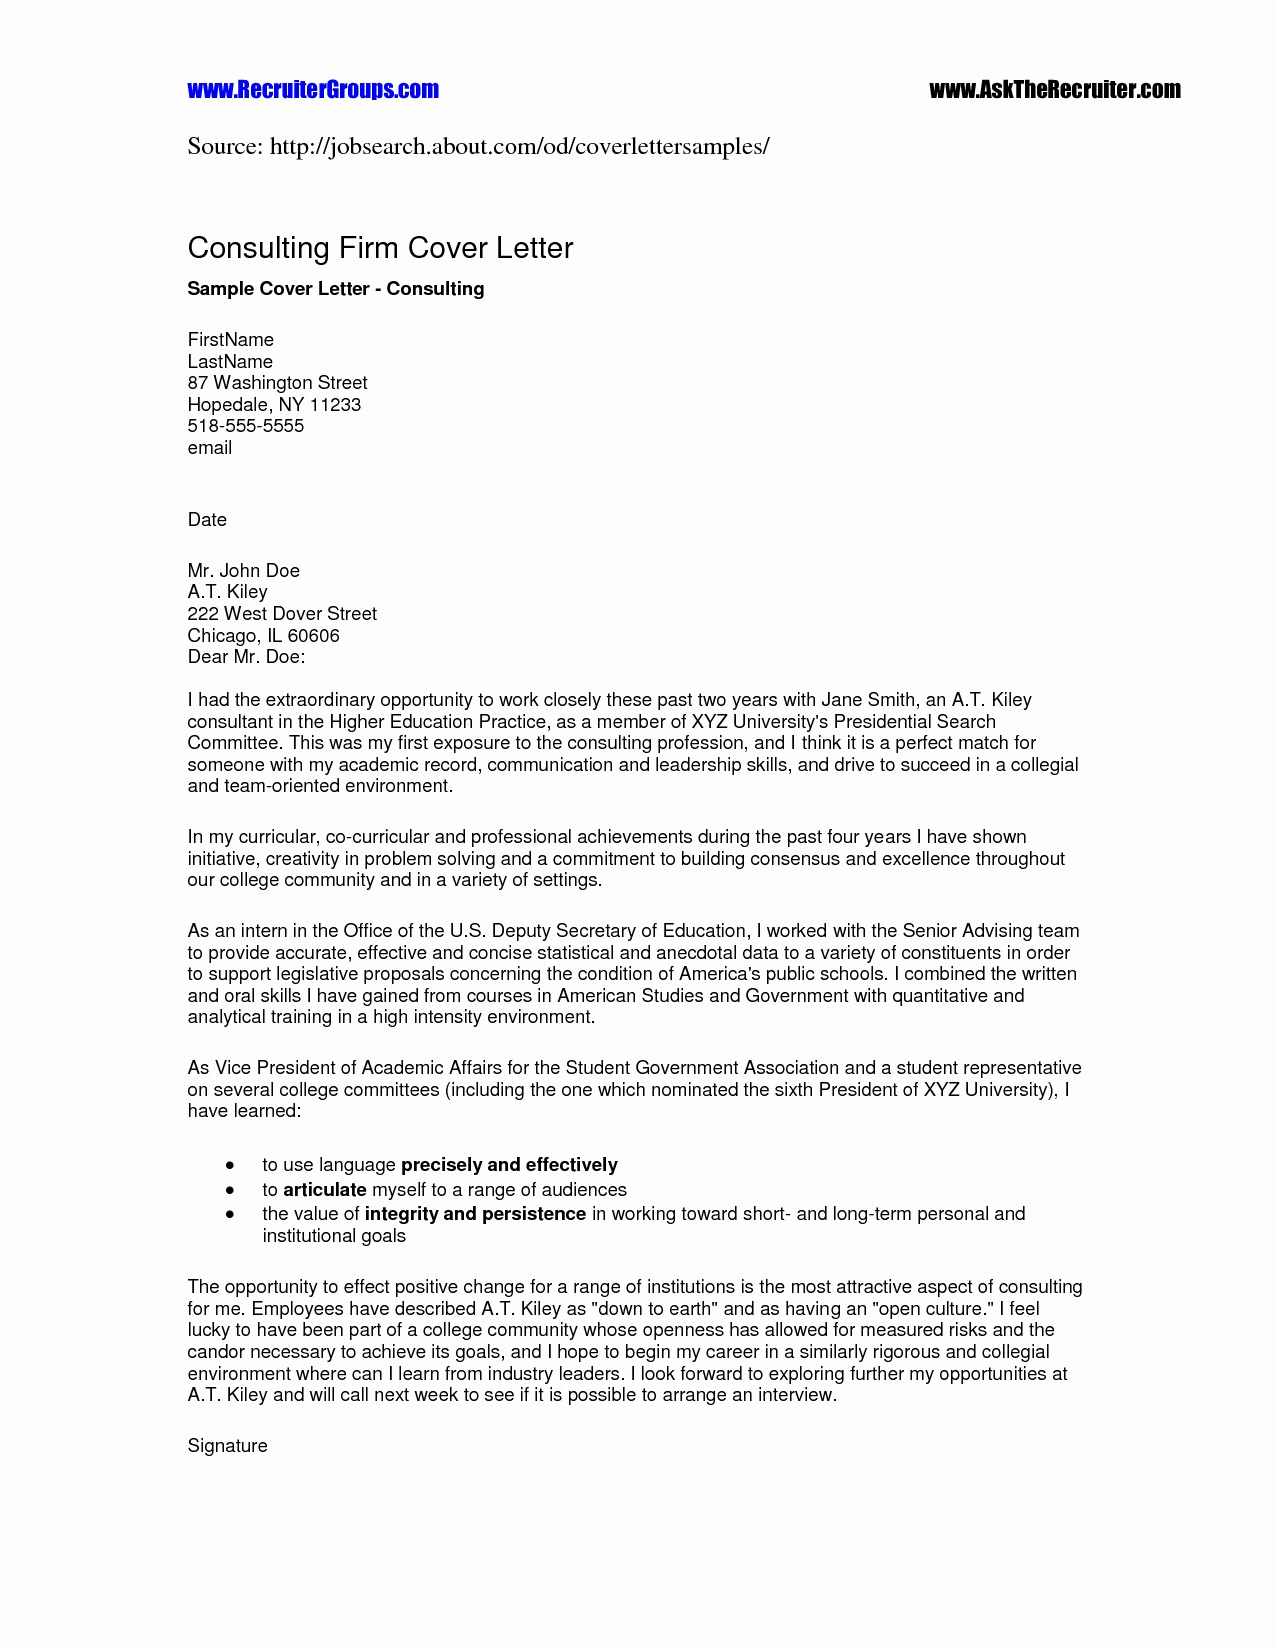 Cover Letter Template Mac - Resume Templates Mac Free Best Word Document Resume Template